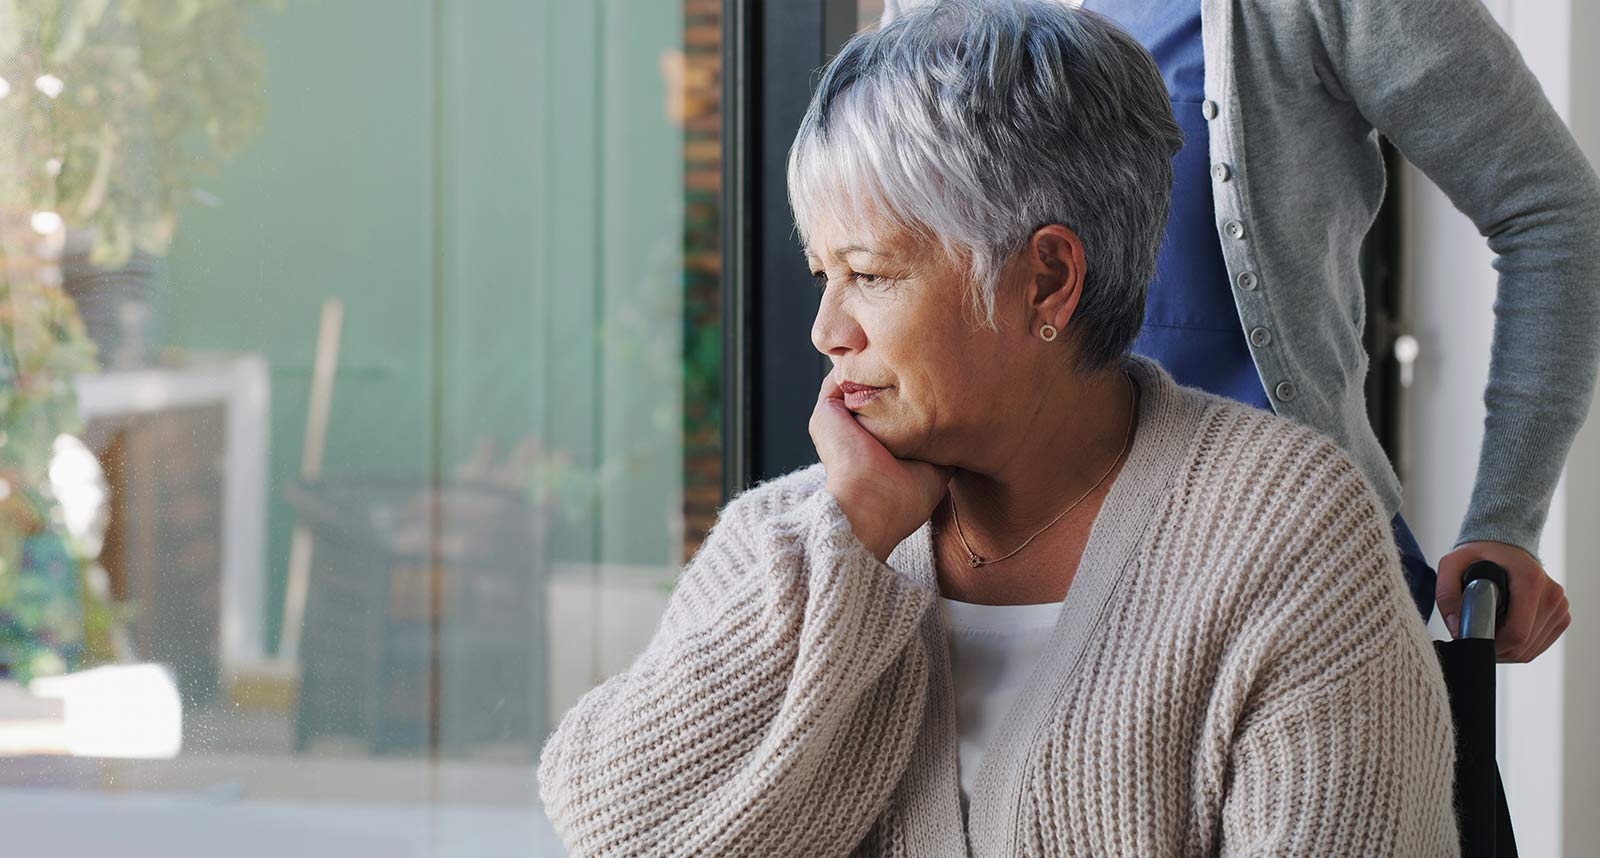 How Your Life Changes After Mobility Loss